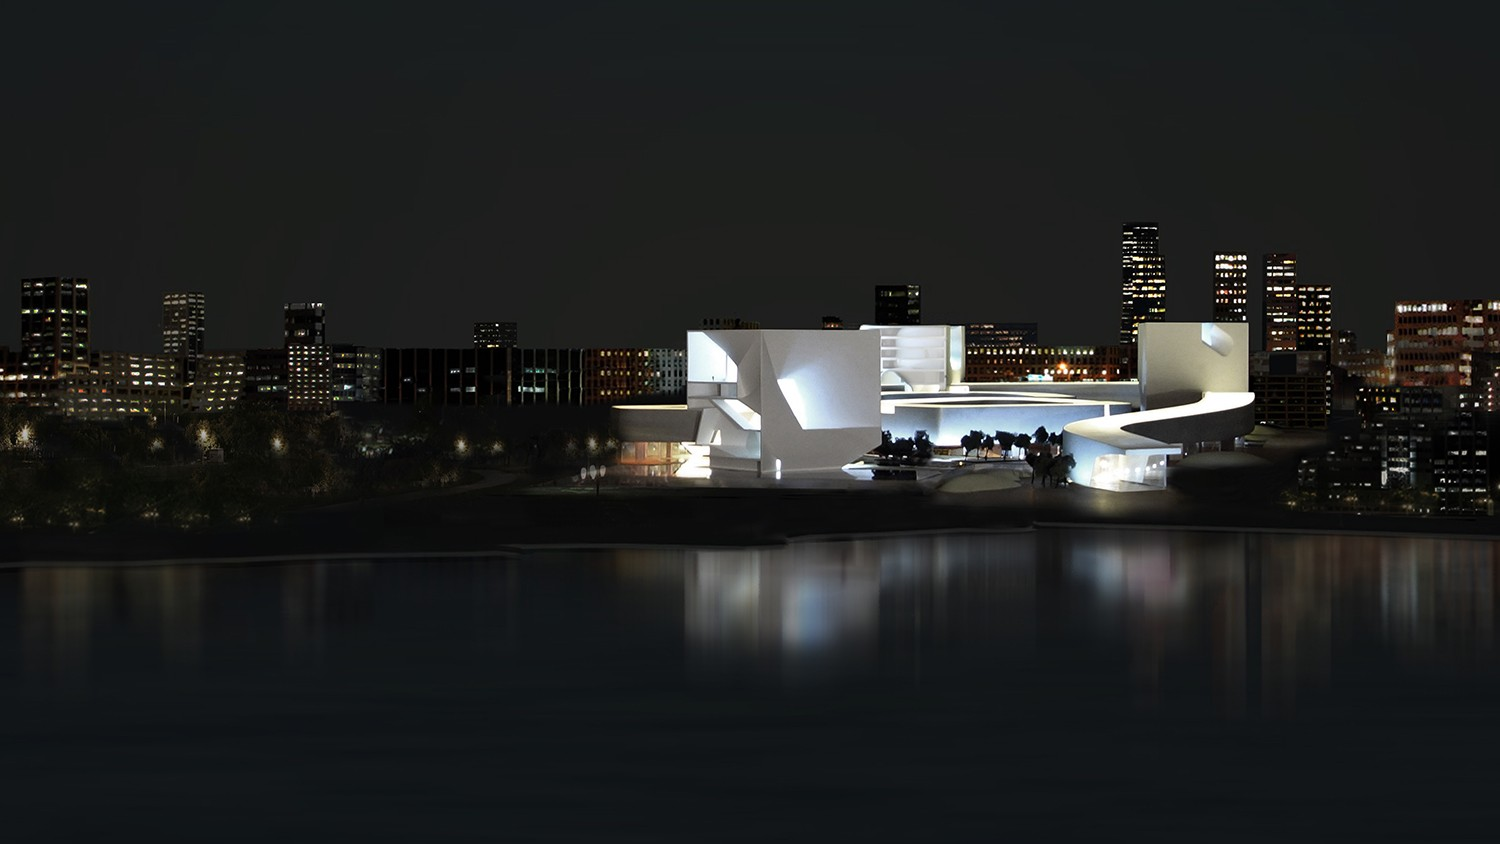 https://stevenholl.sfo2.digitaloceanspaces.com/uploads/projects/project-images/StevenHollArchitects_Qingdao_view_night_01_WH.jpg